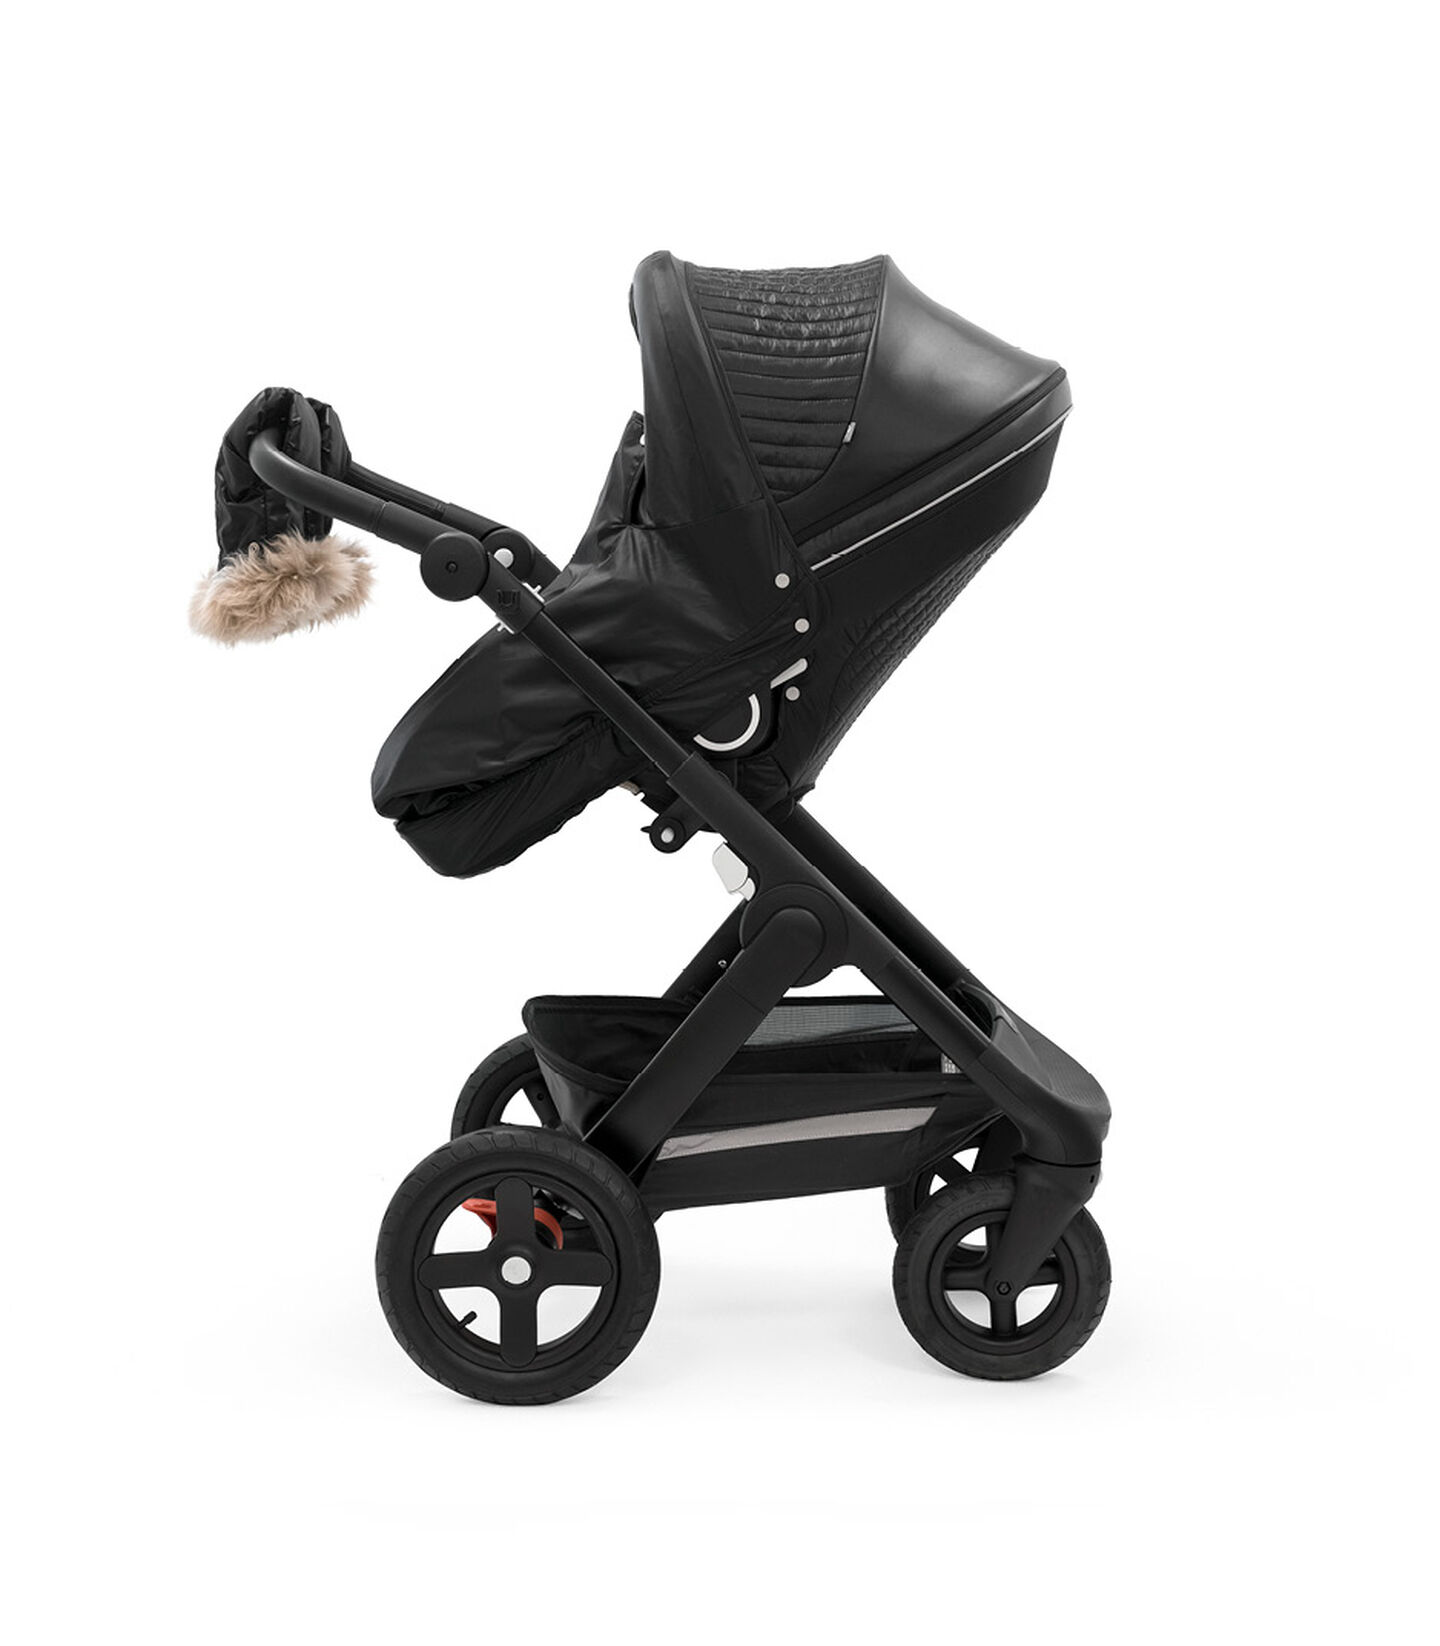 Stokke® Trailz™ Black Chassis with Stokke® Stroller Seat and Onyx Black Winter Kit. view 2